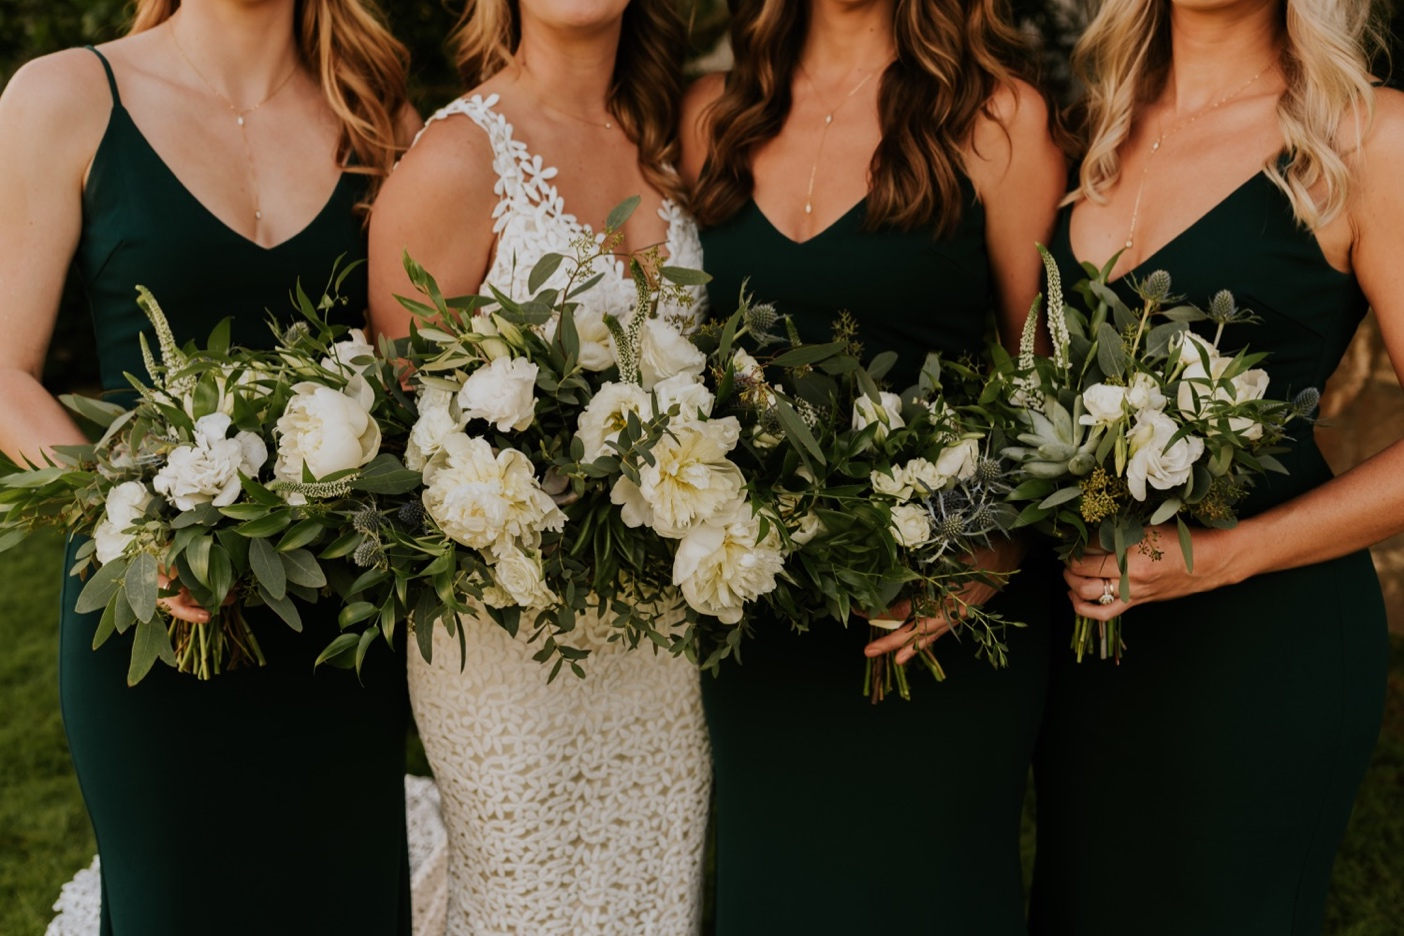 Bridesmaids in green dresses with bride. Wedding Floral Bouquets. Santa Barbara Courthouse Wedding.